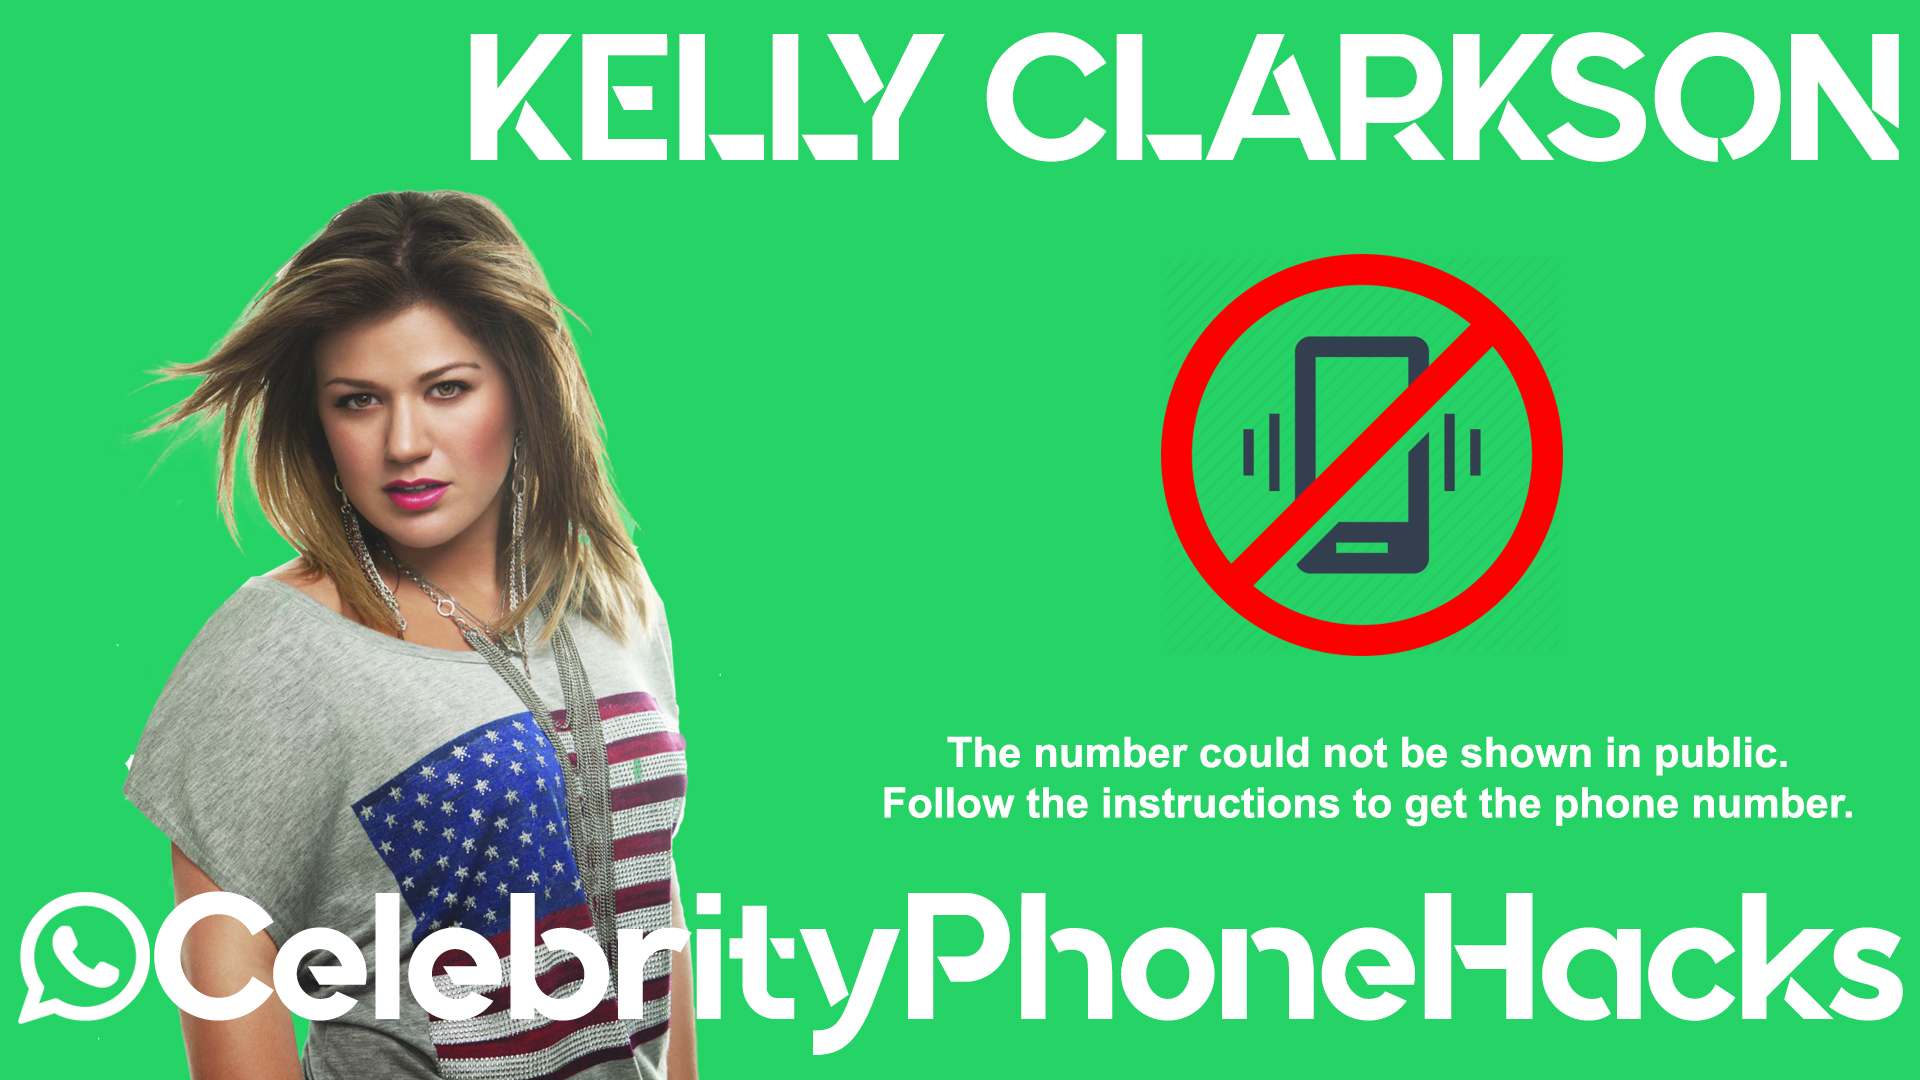 Kelly Clarkson real phone number 2019 whatsapp hacked leaked